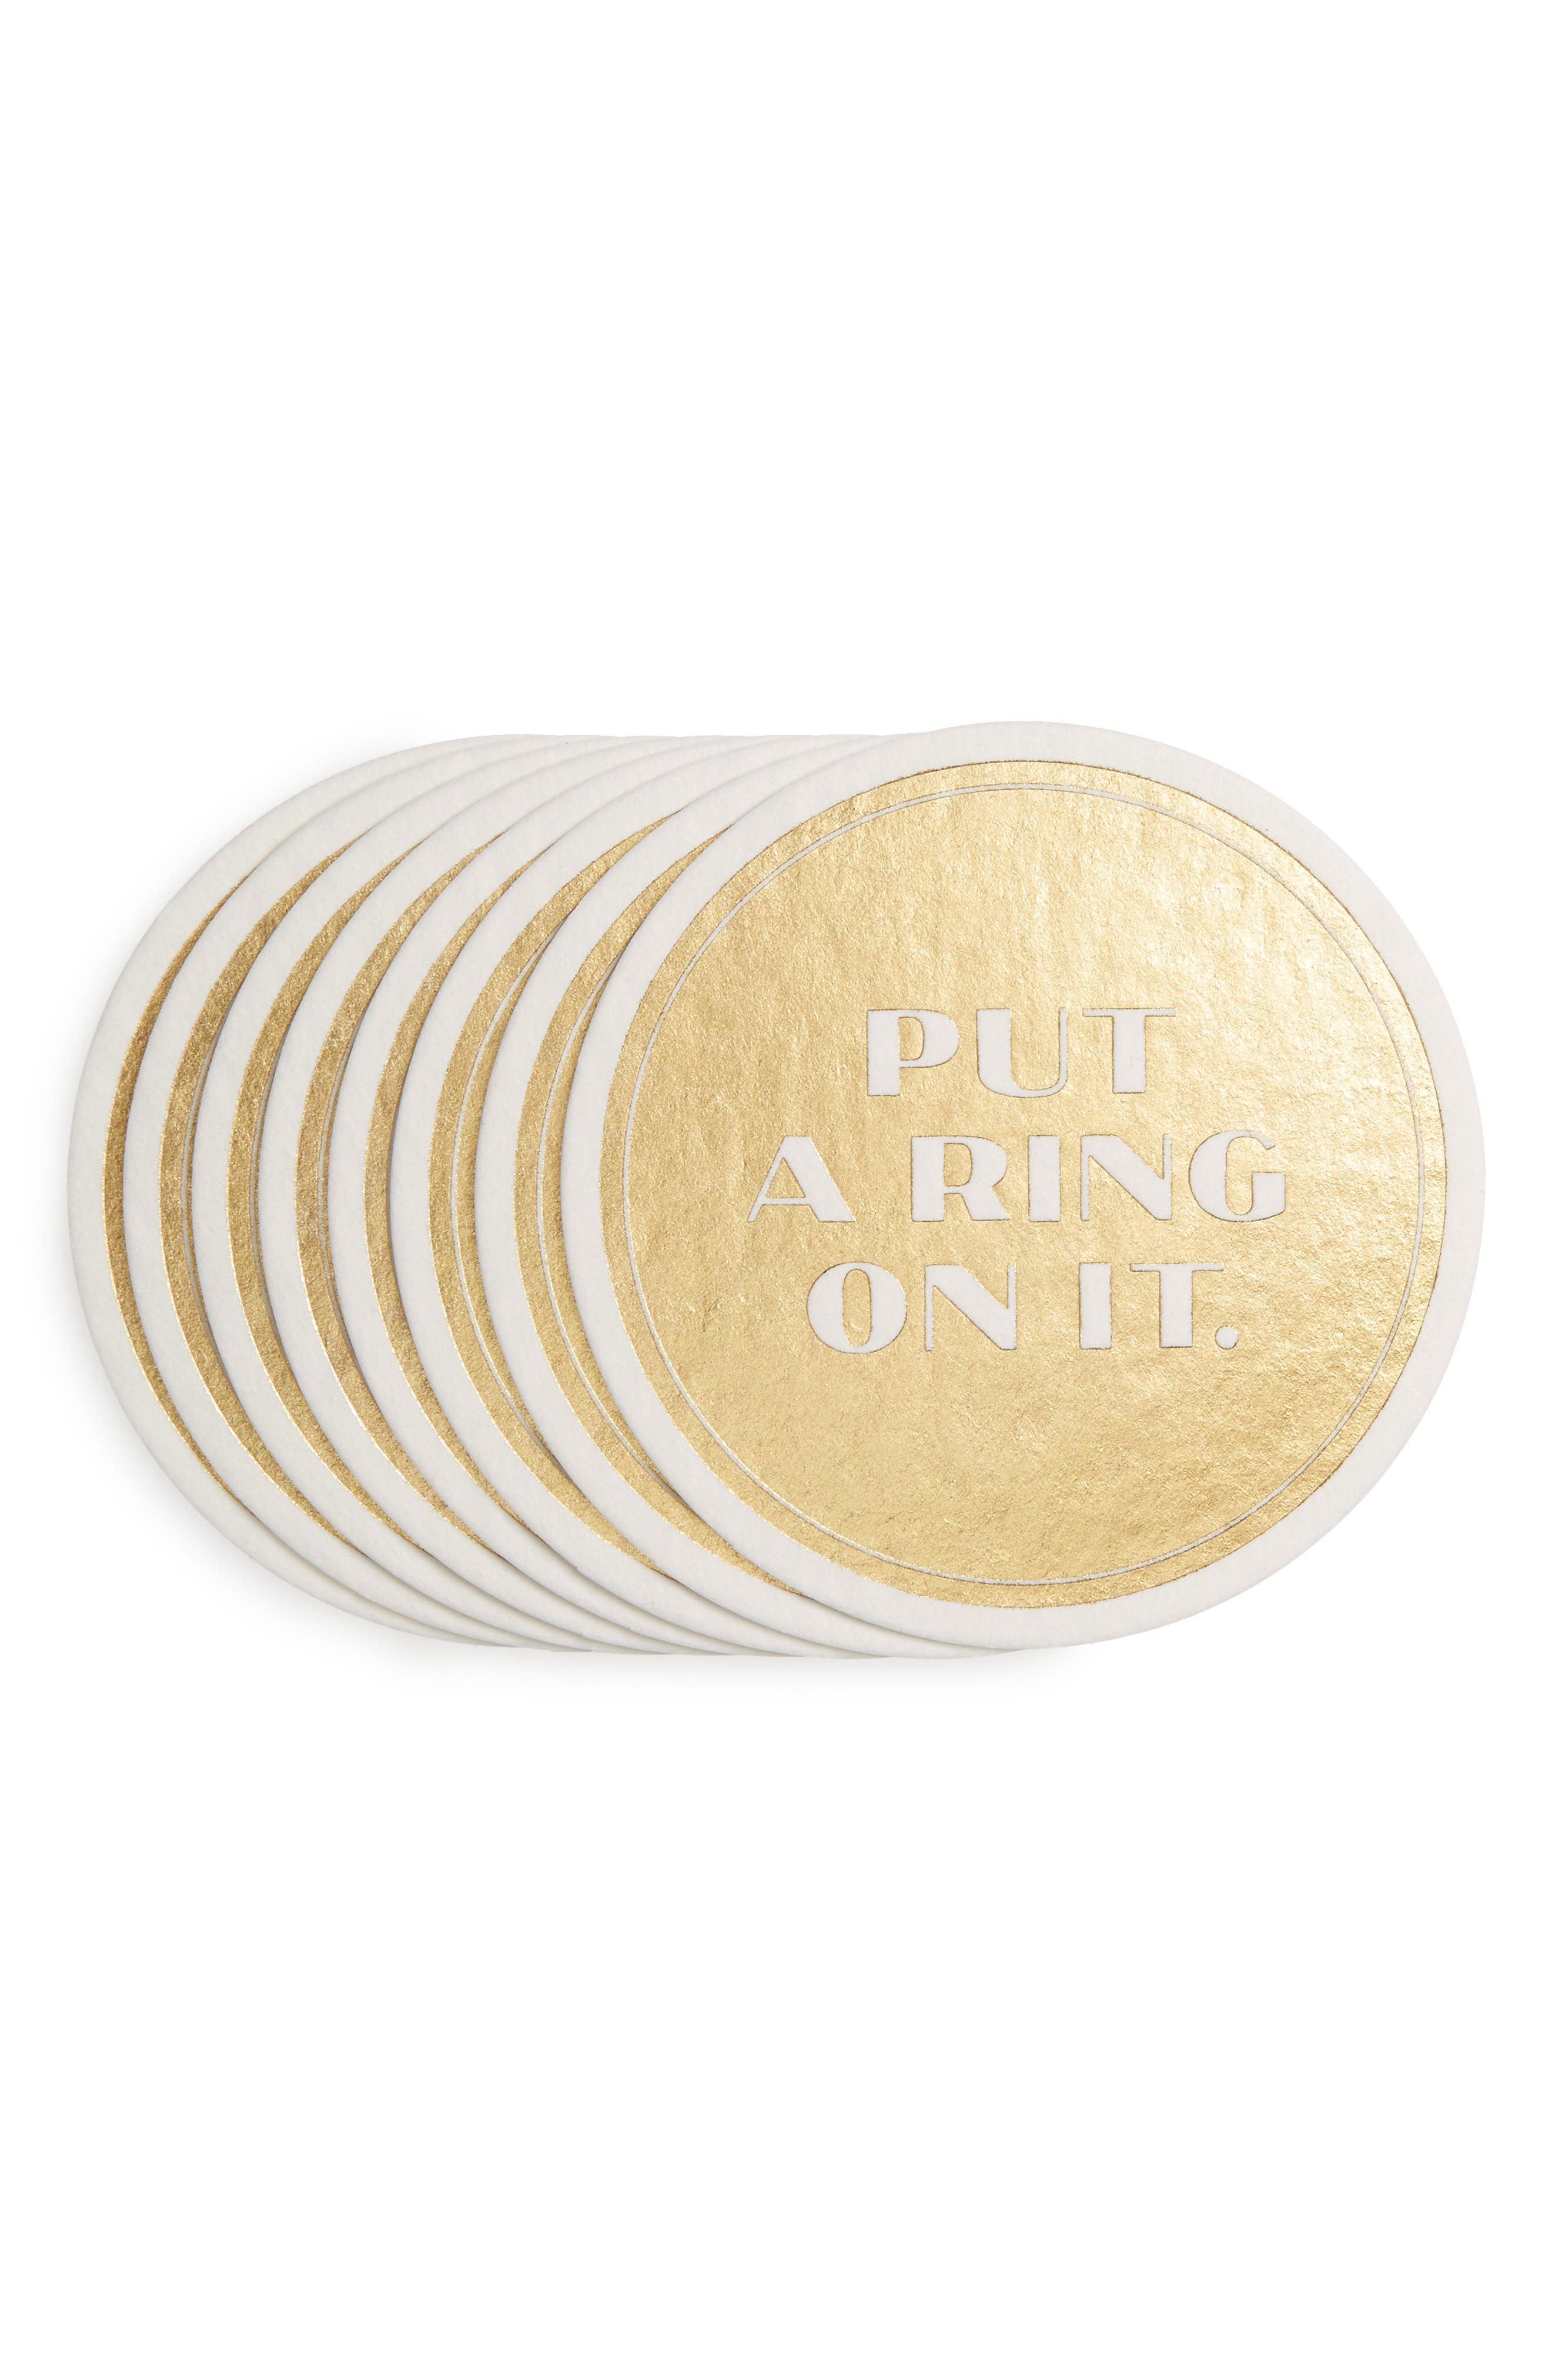 Easy, Tiger Put A Ring On It Set of 8 Coasters